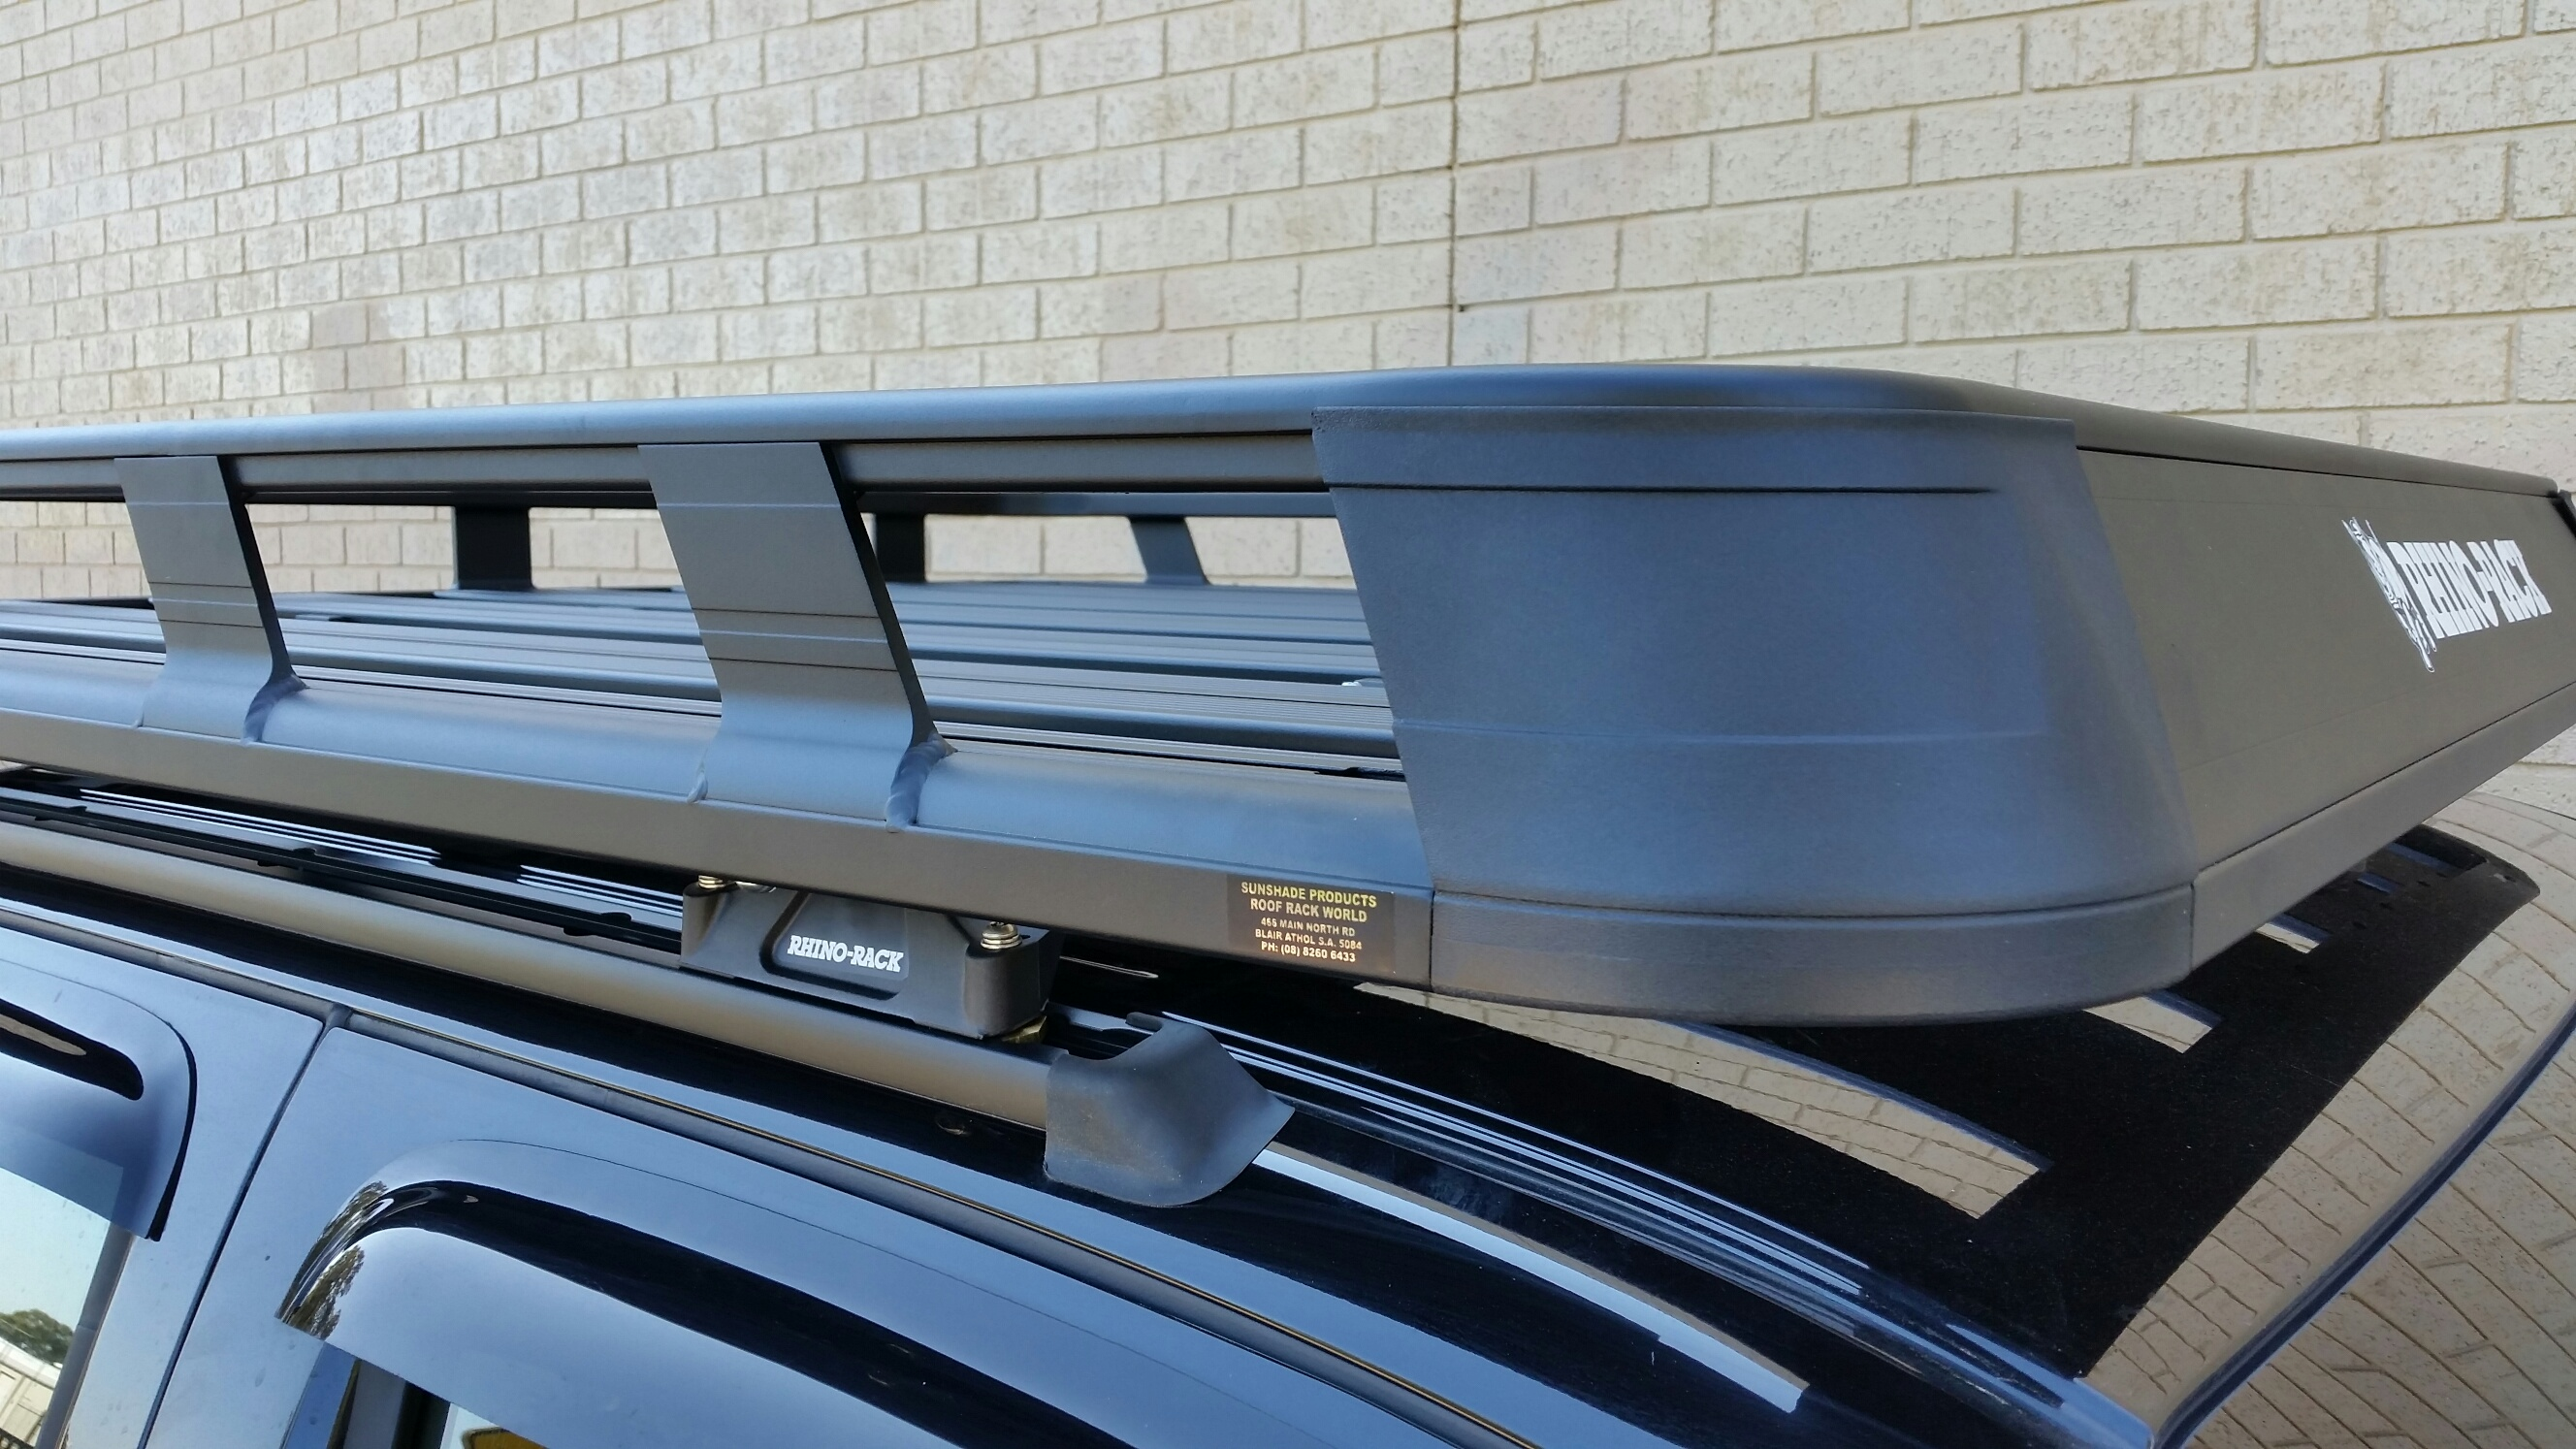 want load if your on wrozelle rack that rhino s to fabulous racks com eventually luggage awnings pioneer when tray the or au arrangement useful visit roof purchase with become decor ideas home you luxurious modular index car dan